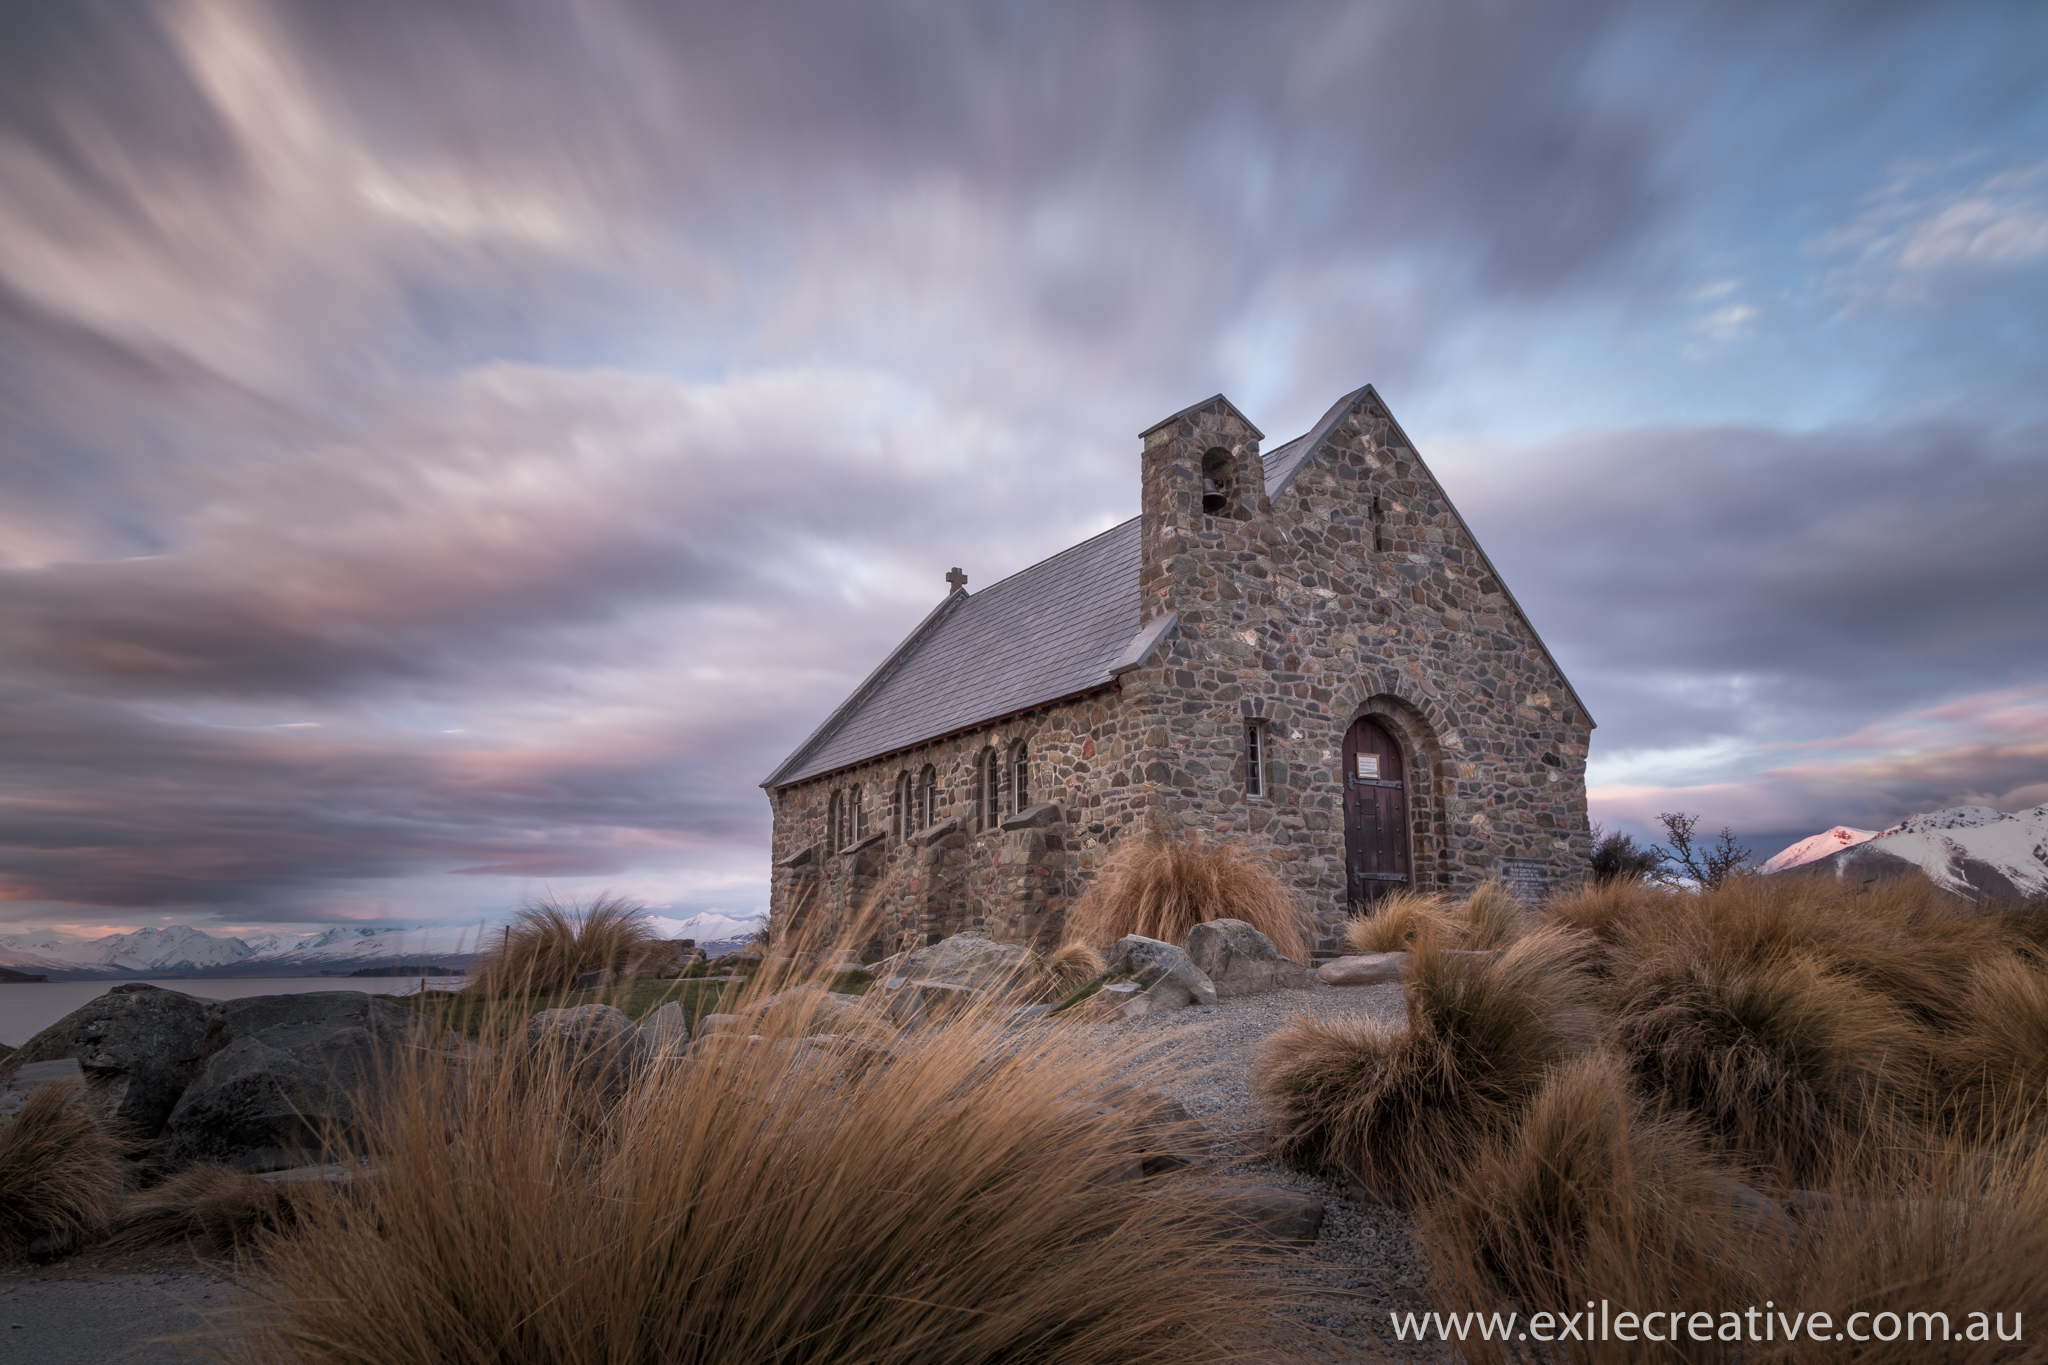 Finally I am here...The Church of the Good Shepard on the shore of Lake Tekapo  Canon 5Dmiii, 24-105L  @ 24mm, ISO50, f/16, 30s with 0.6ND Soft Grad